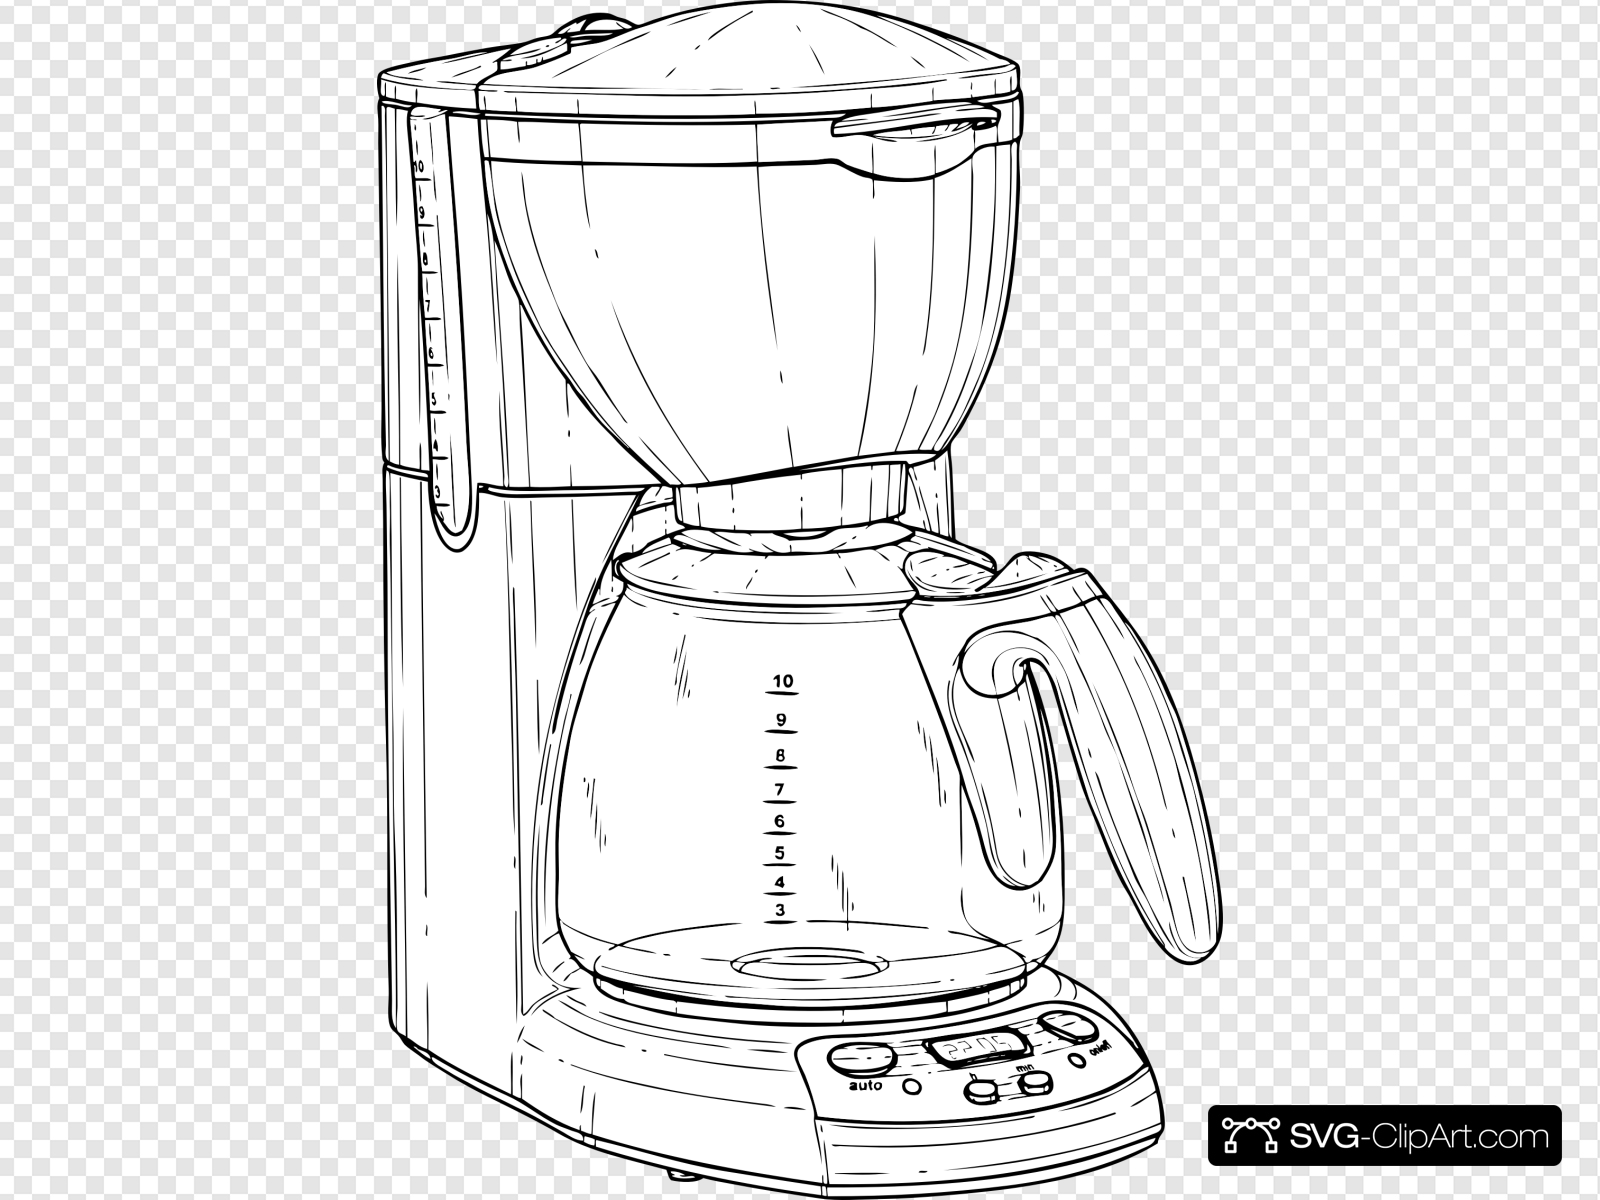 Auto clipart maker jpg library stock Coffee Maker Clip art, Icon and SVG - SVG Clipart jpg library stock